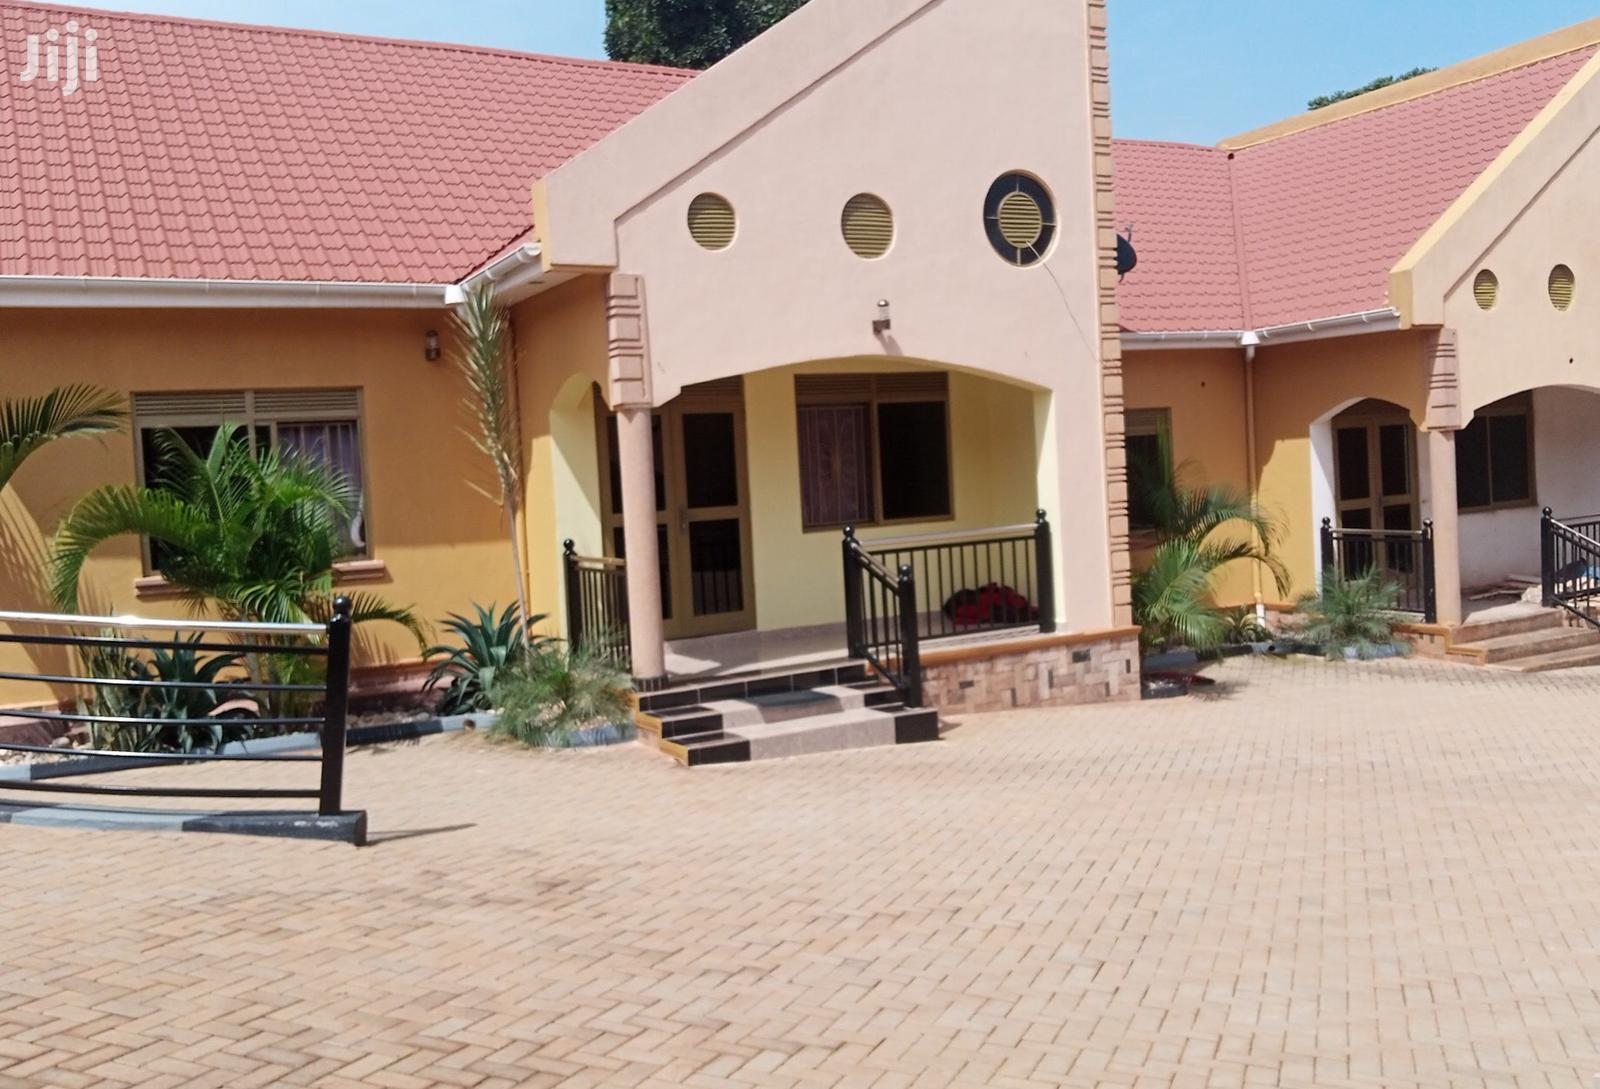 Two Bedroom House In Namugongo For Rent